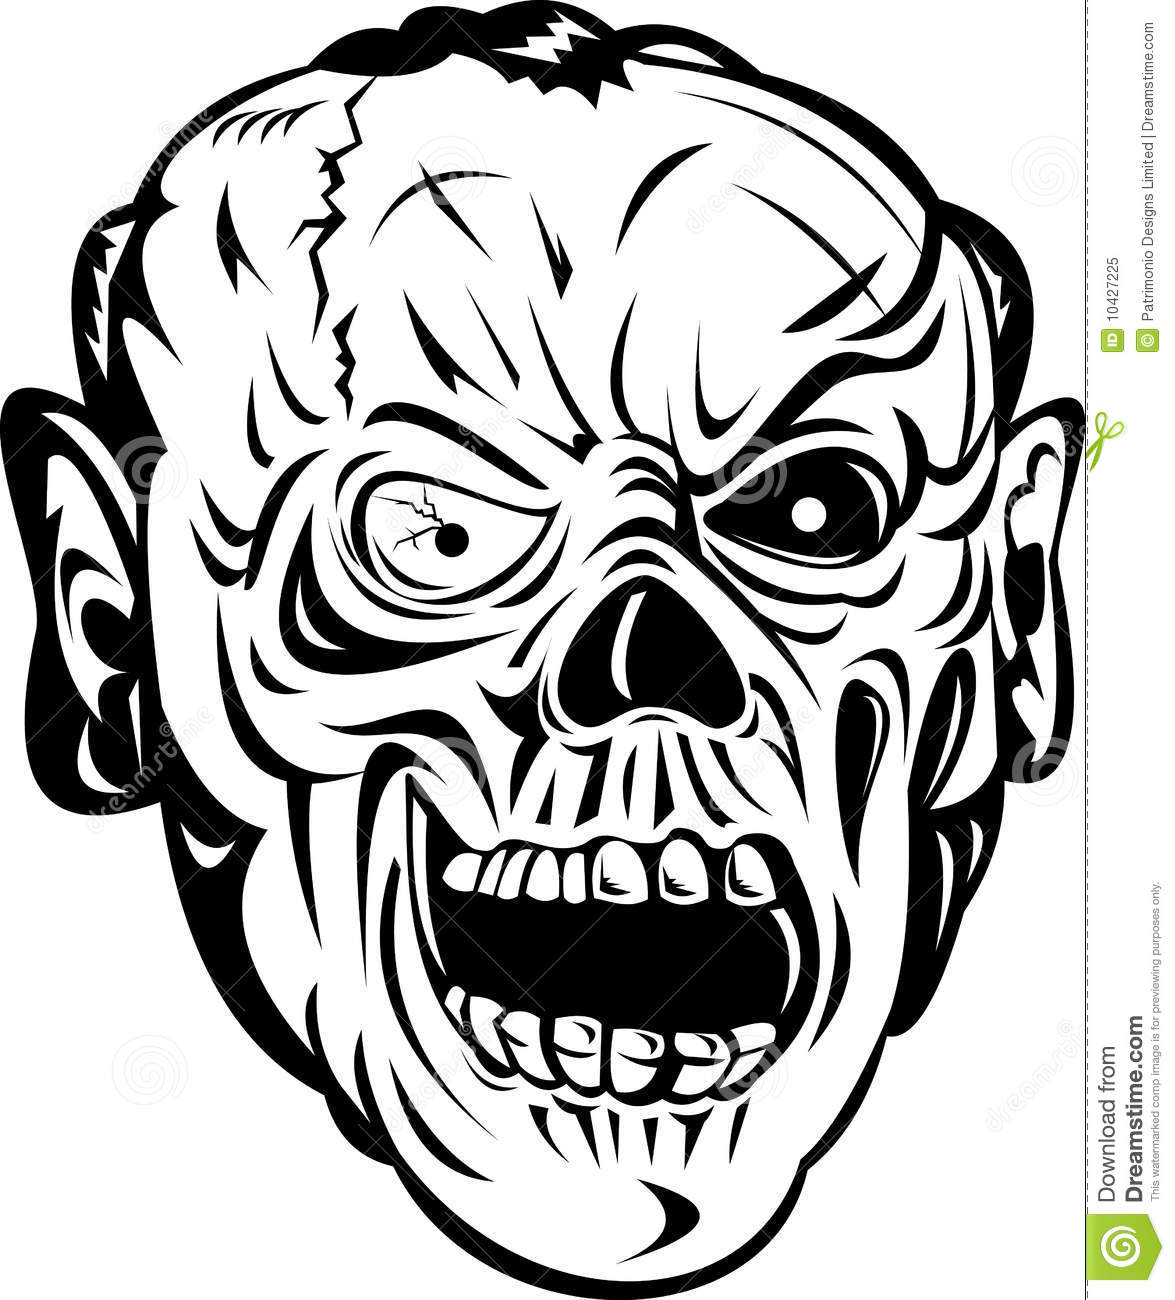 Zombie Face Line Drawing : Zombie skull bone face stock vector illustration of black